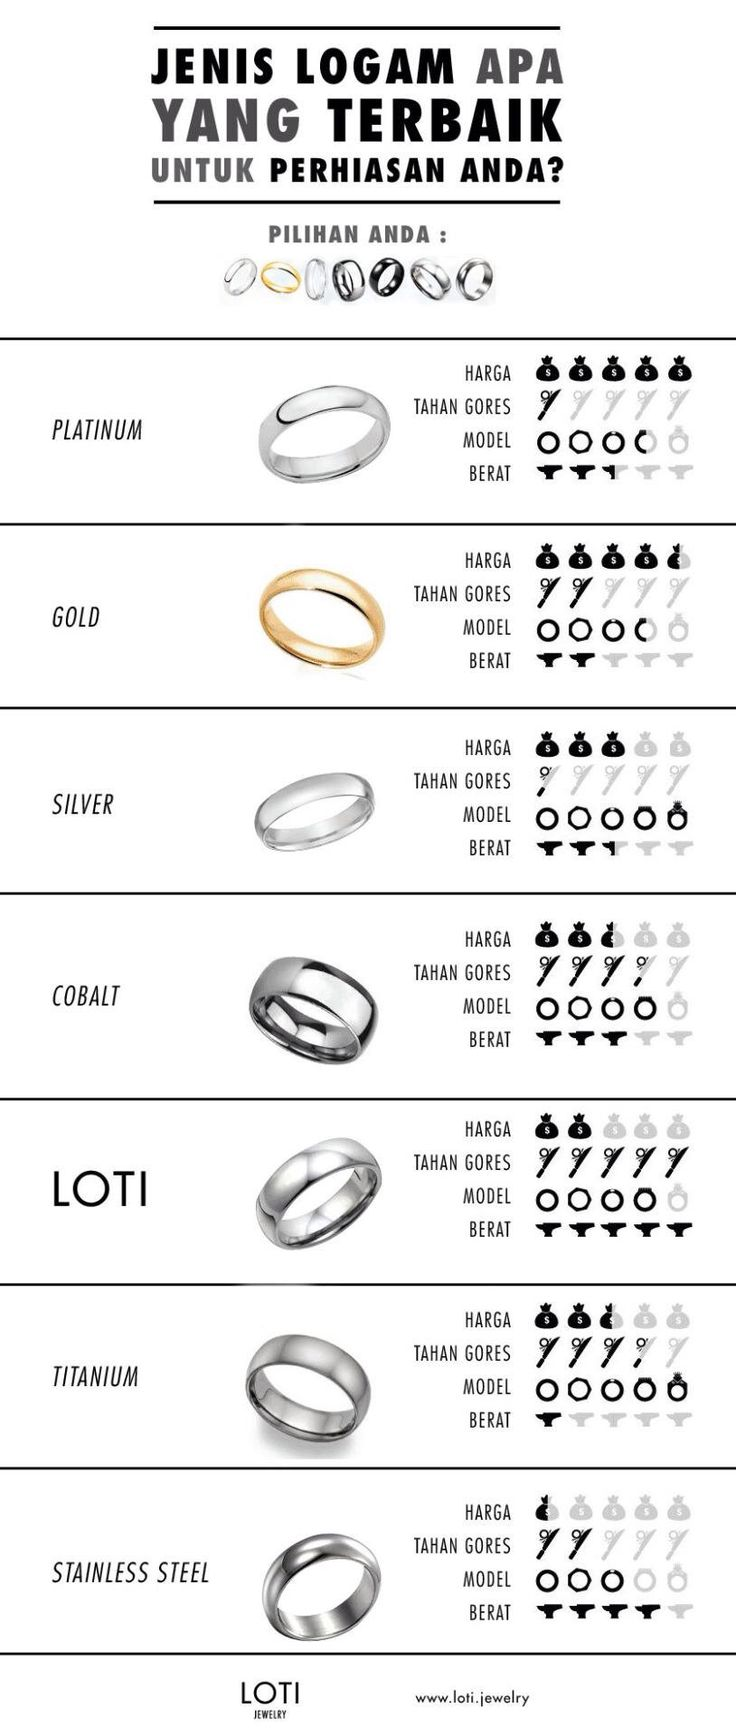 What is the best material for your jewelry? your choices? Exactly my choice is Loti!